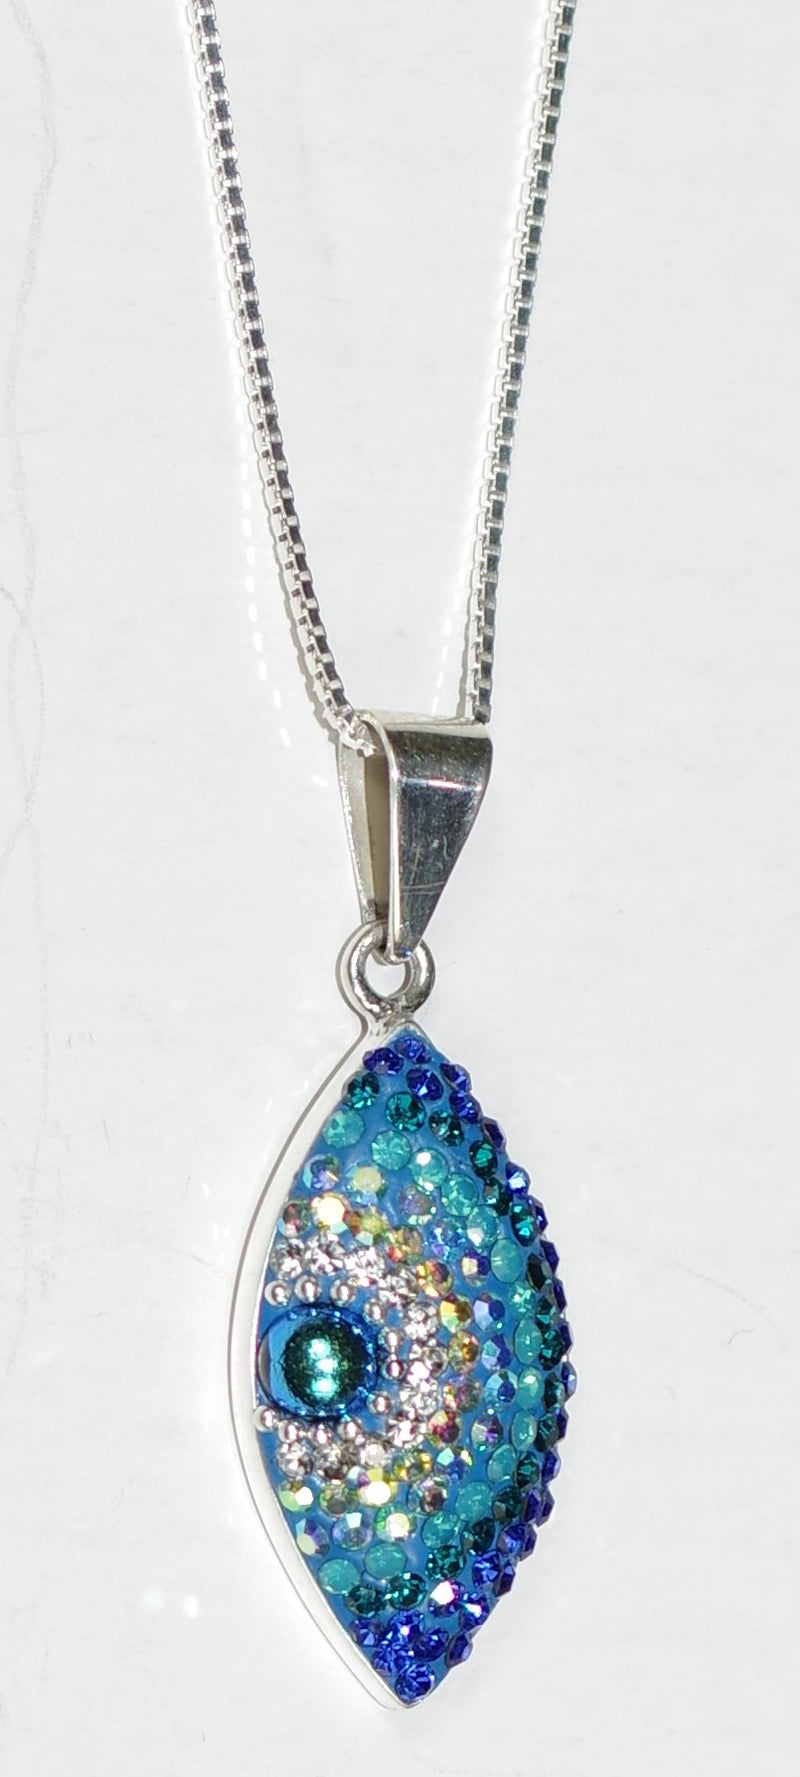 "MOSAICO PENDANT EYE-D: multi color Austrian crystals in 1"" solid silver pendant, 18-20 inch adjustable silver chain"